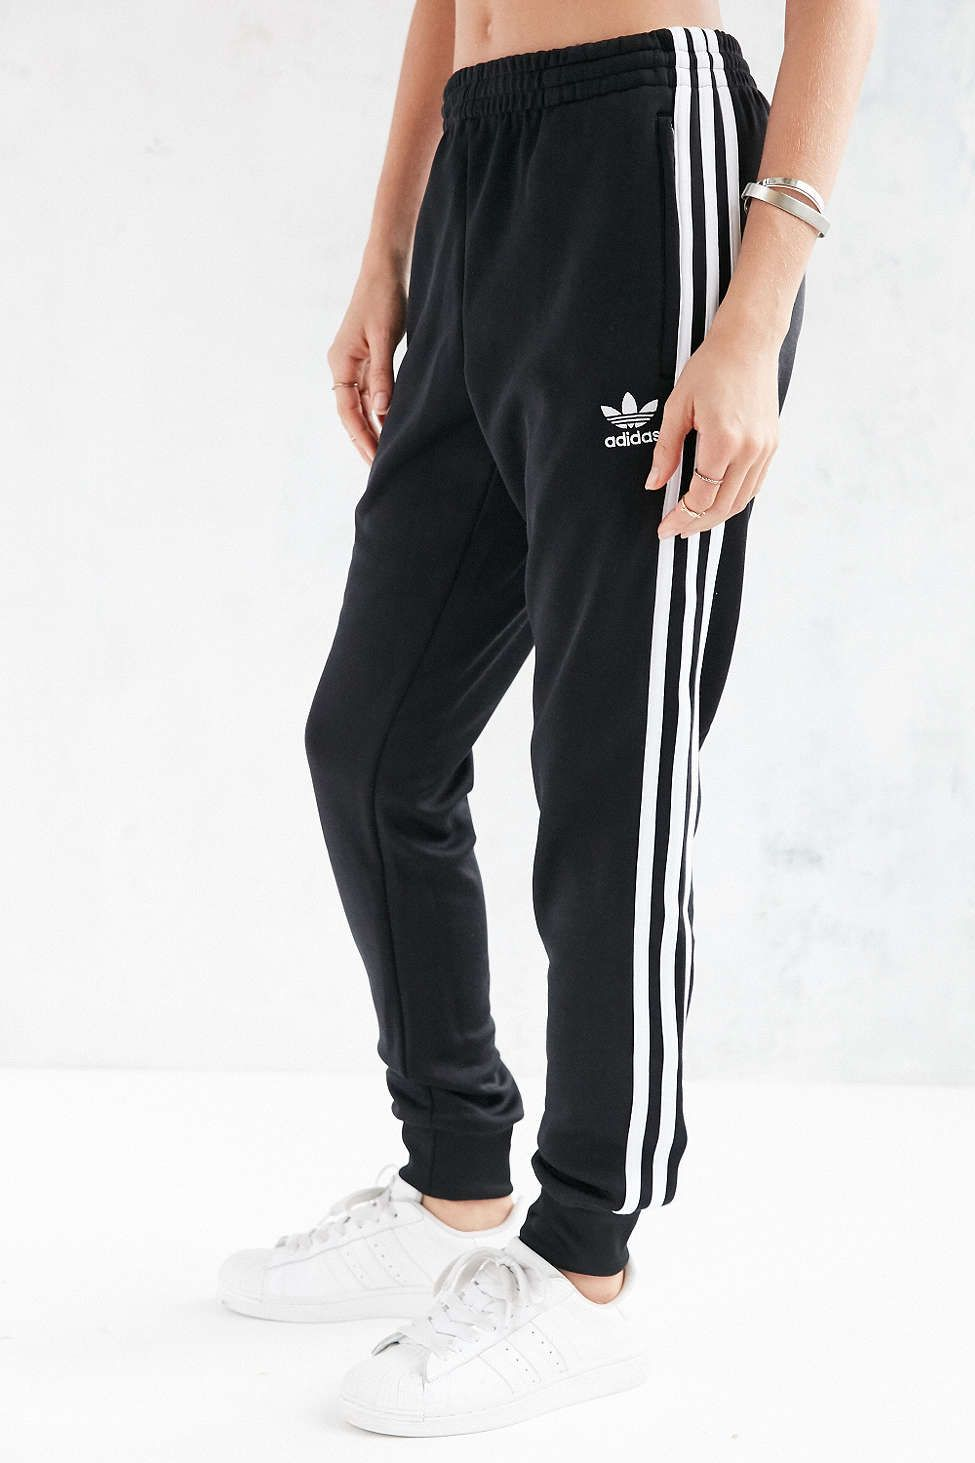 8fee55c6b8 adidas Originals Unisex Superstar Cuff Track Pant | adidas | Pinterest